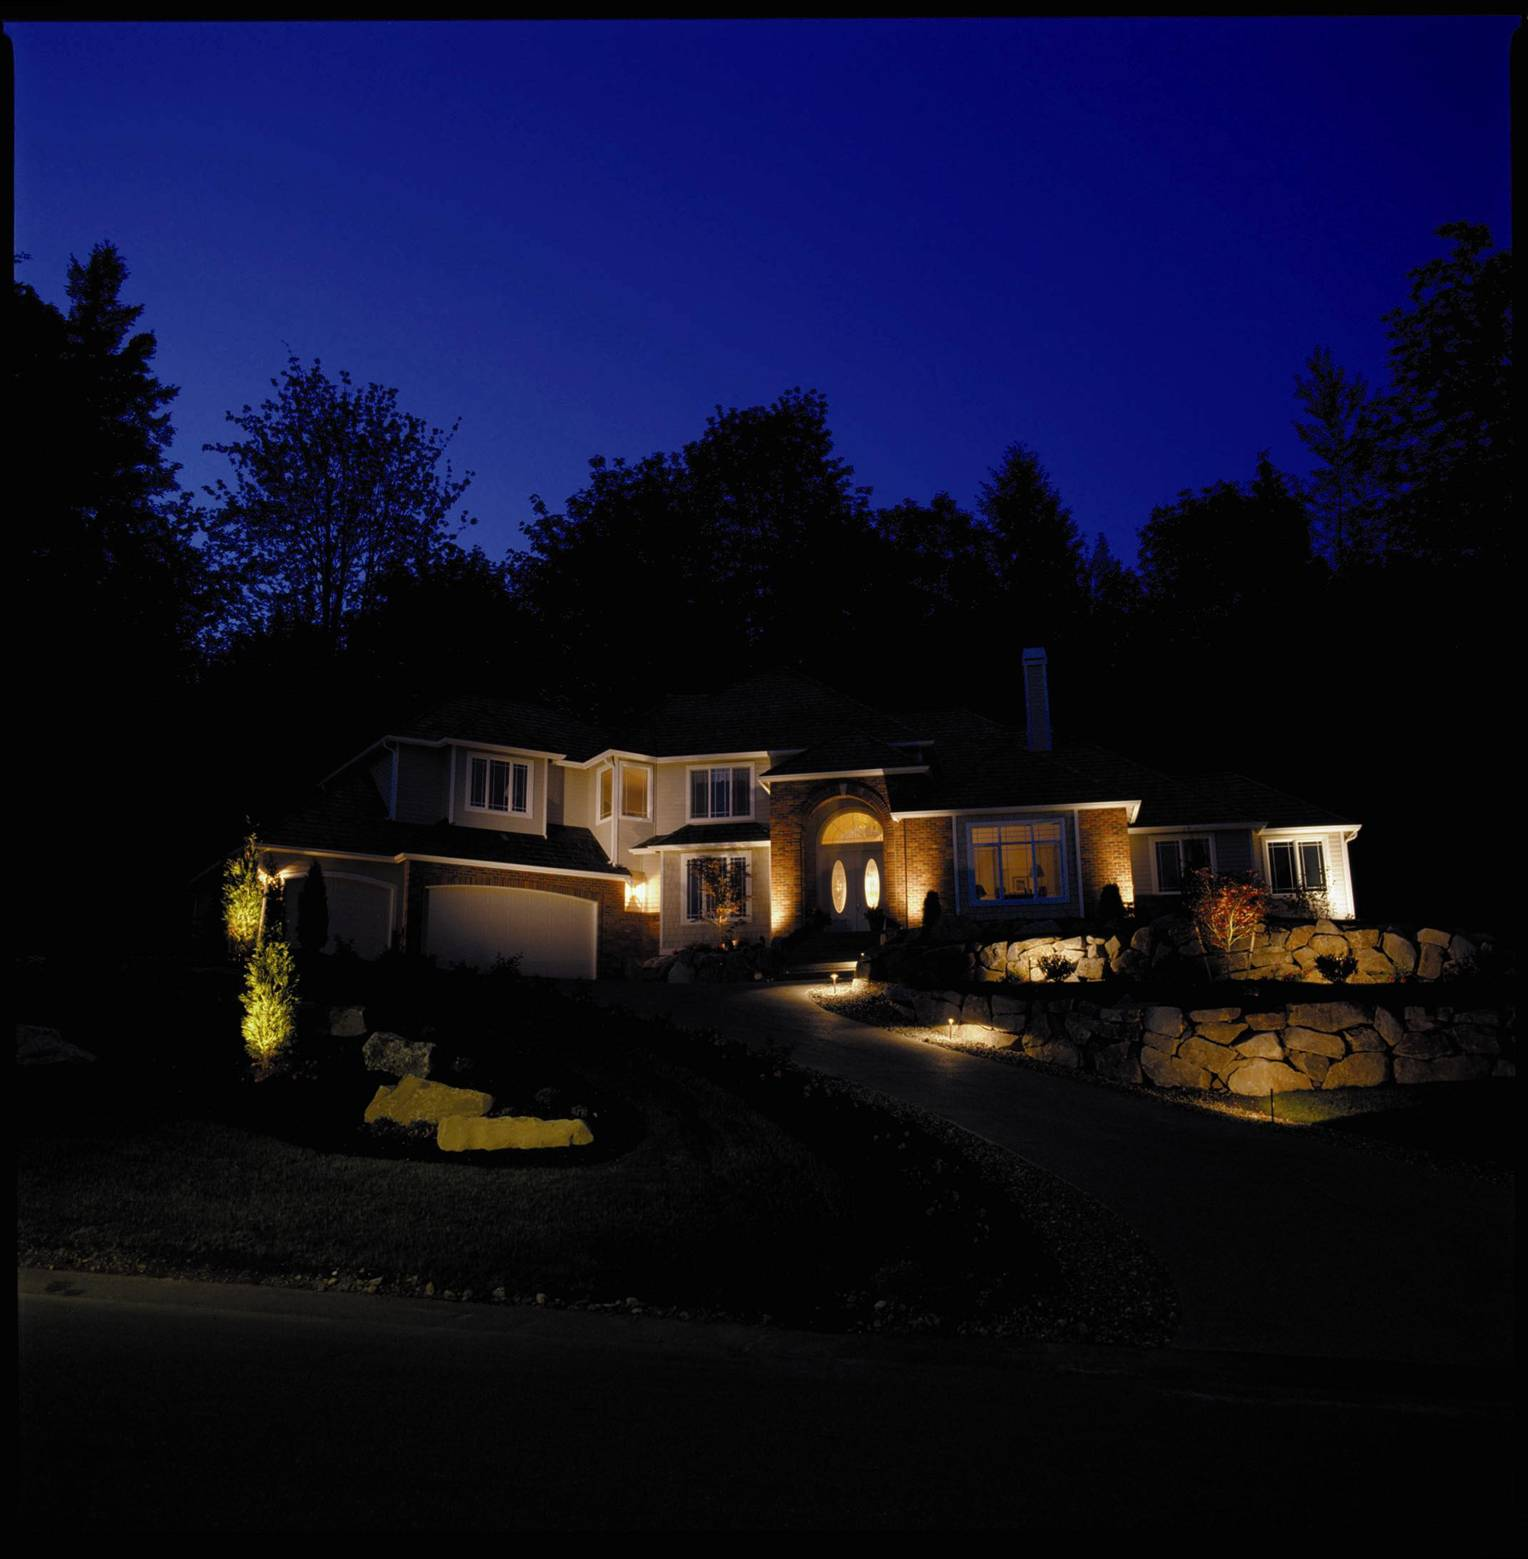 Driveway Lights Guide Outdoor Lighting Ideas Tips: Outdoor Lighting Perspectives